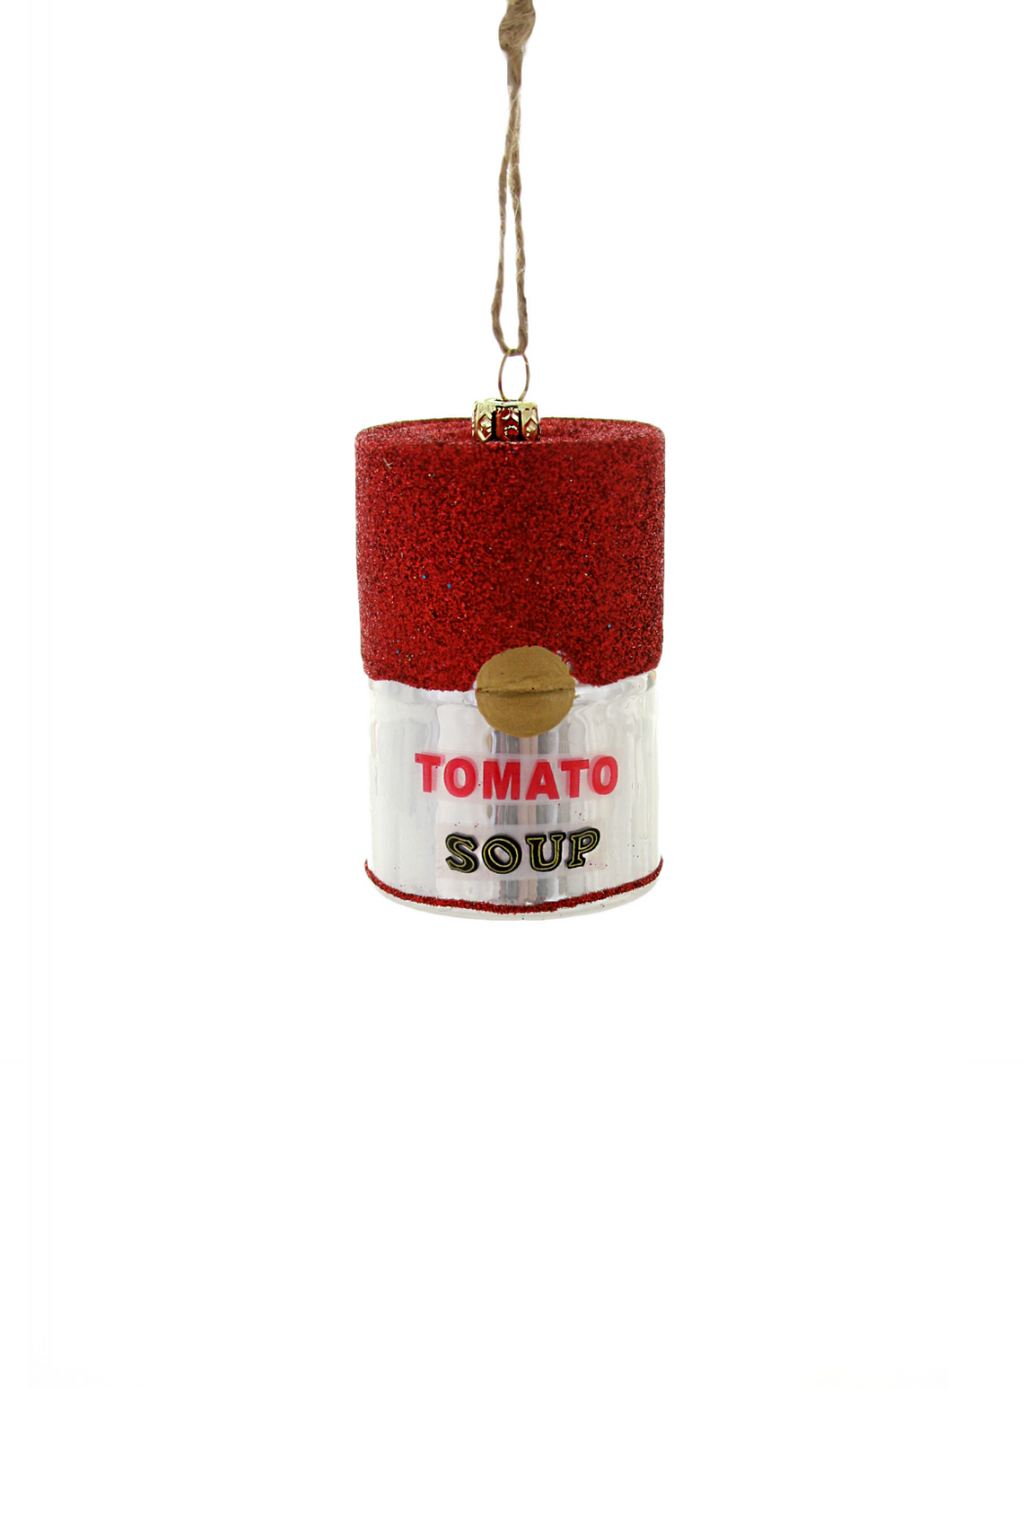 Cody Foster Tomato Soup Ornament